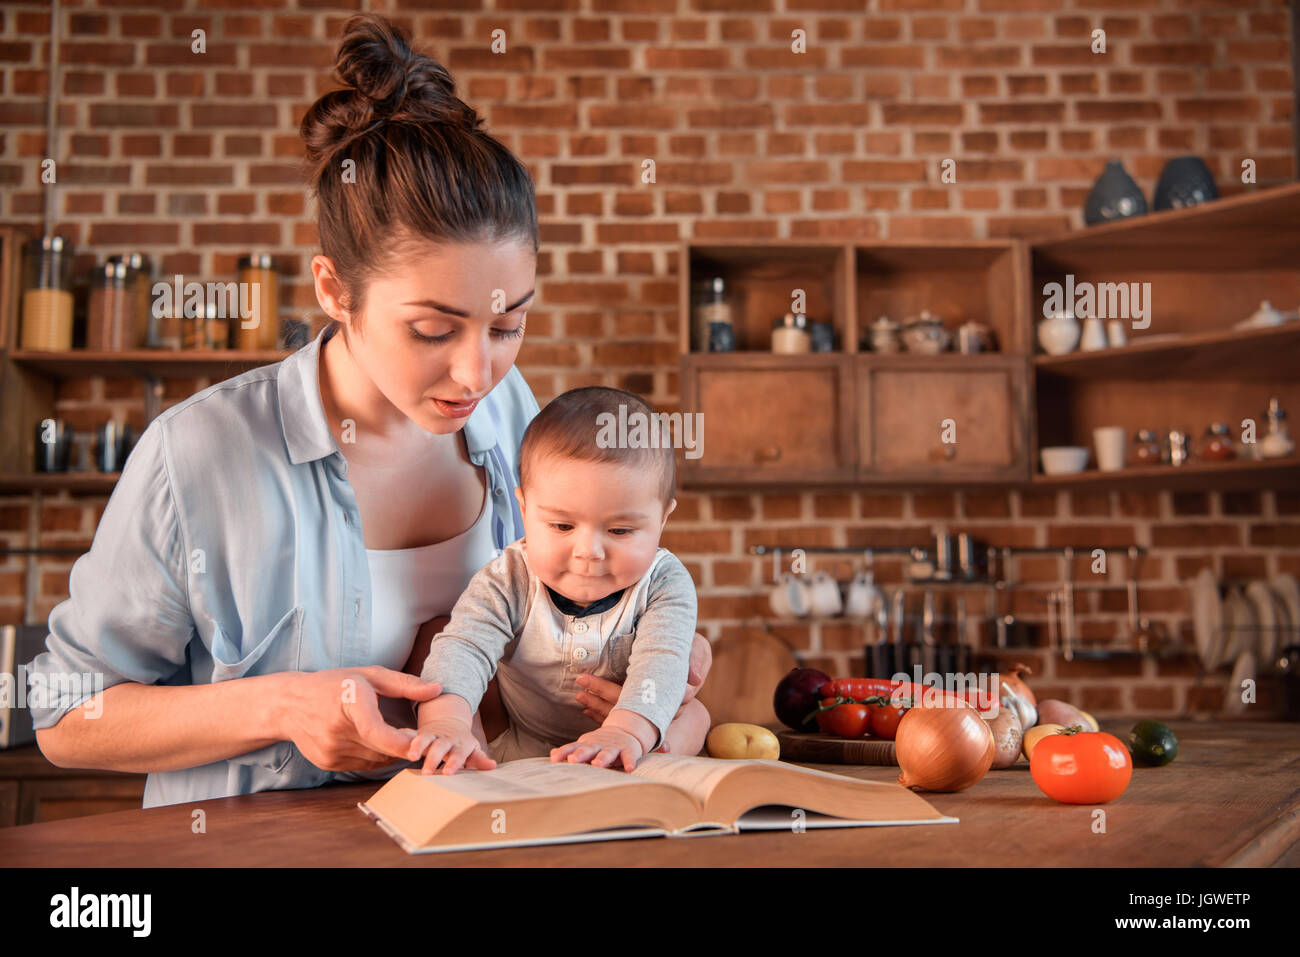 Mother with her baby son reading recipe book before preparing dinner in the kitchen - Stock Image